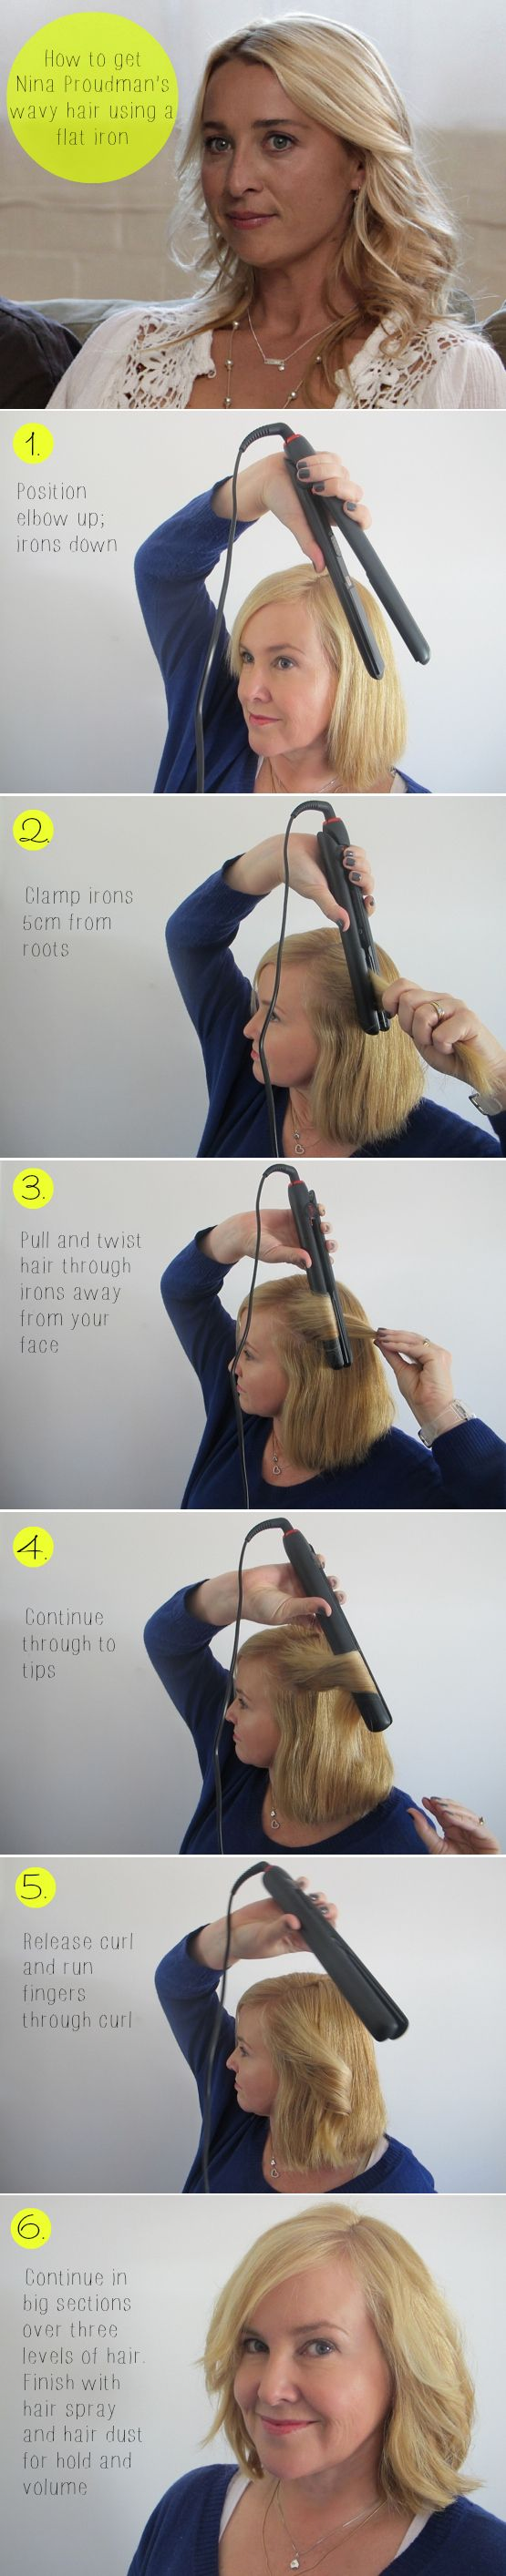 20 Bonitos peinados para pelo largo paso a paso - 20 Beautiful Hairstyles for Long Hair Step by Step Pictures